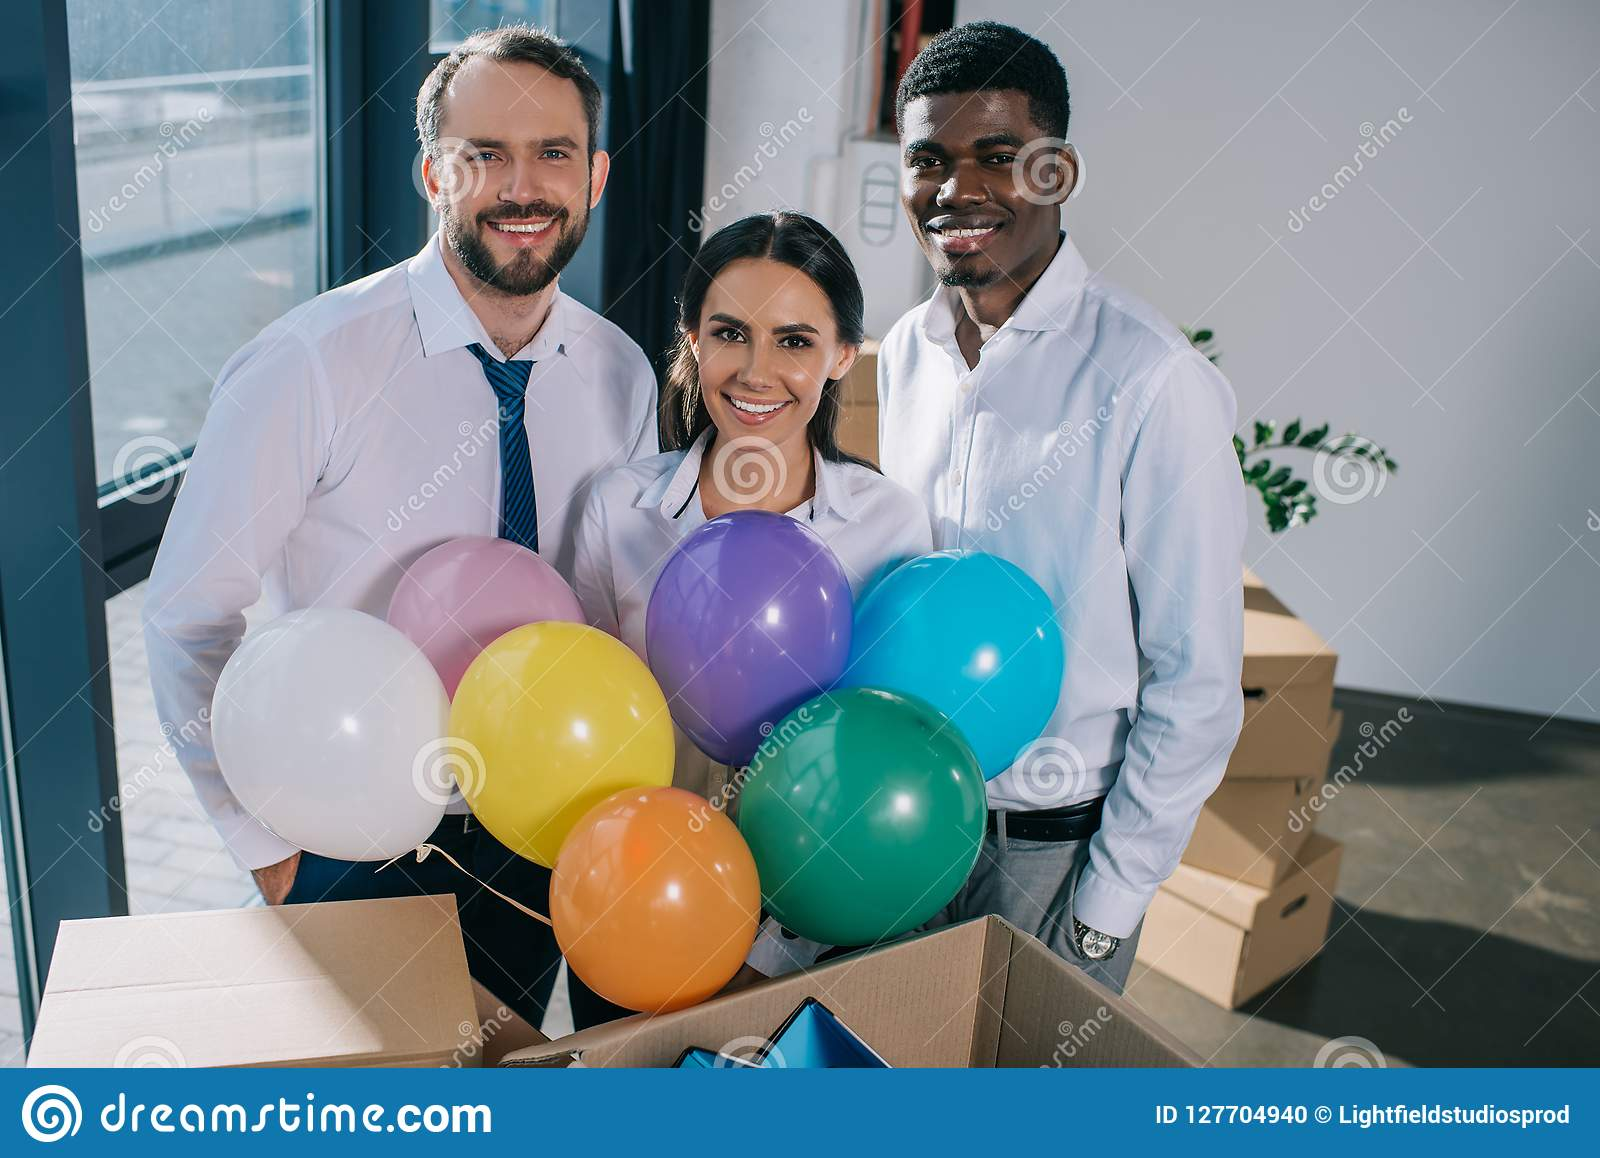 happy multiethnic coworkers holding colorful balloons and smiling at camera in new